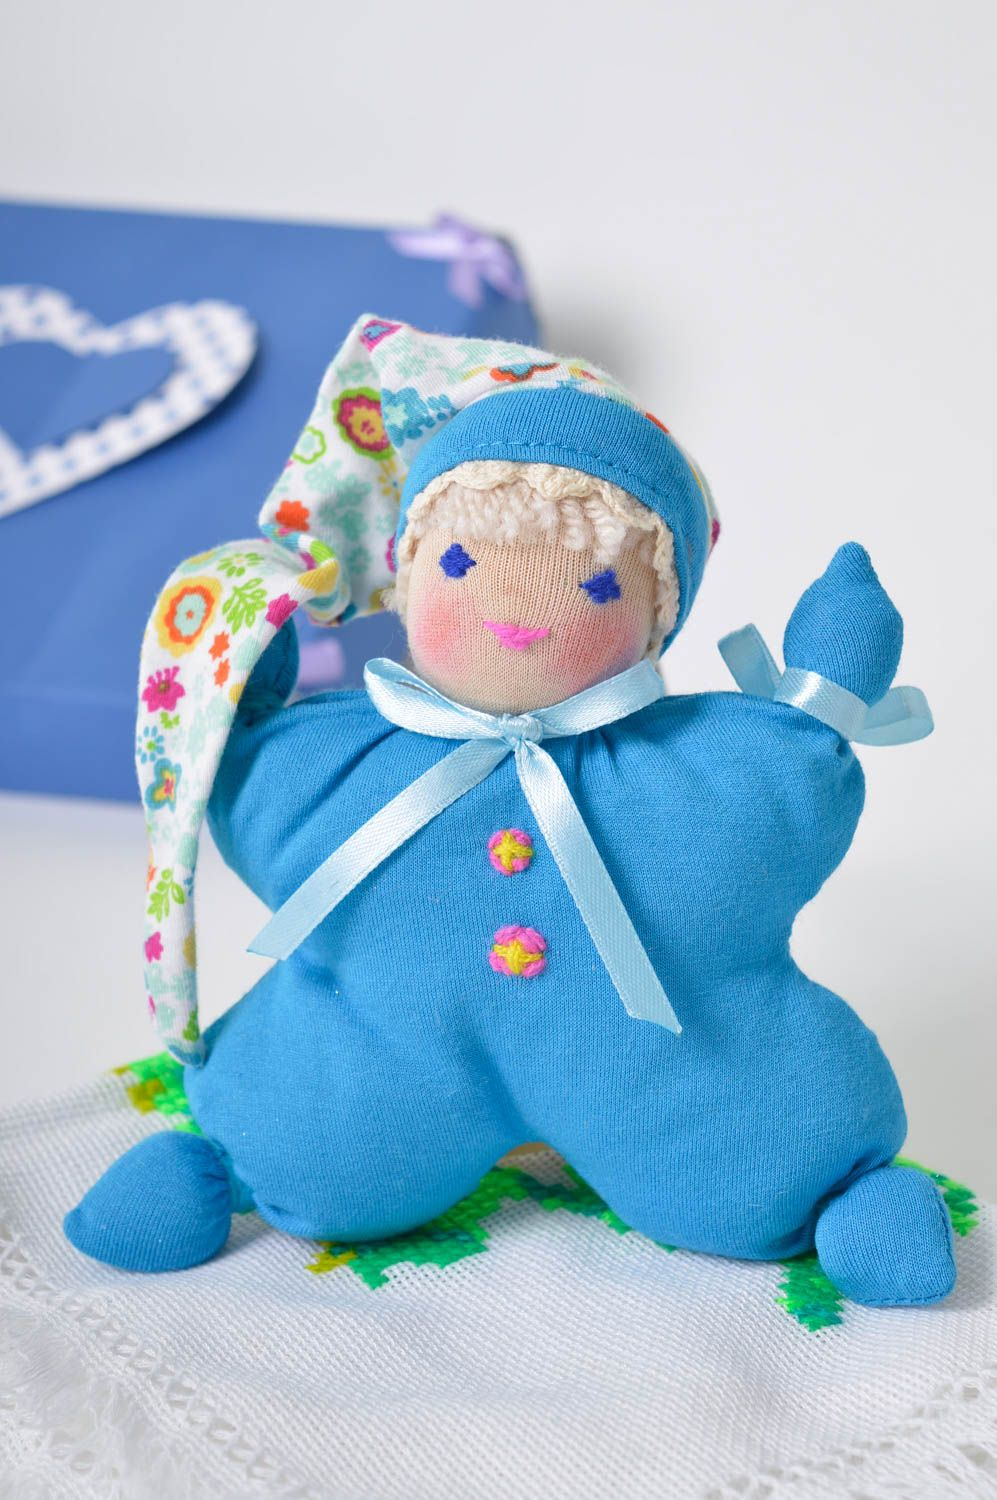 Toy for kids handmade soft toy soft doll nursery decor for decorative use only photo 5